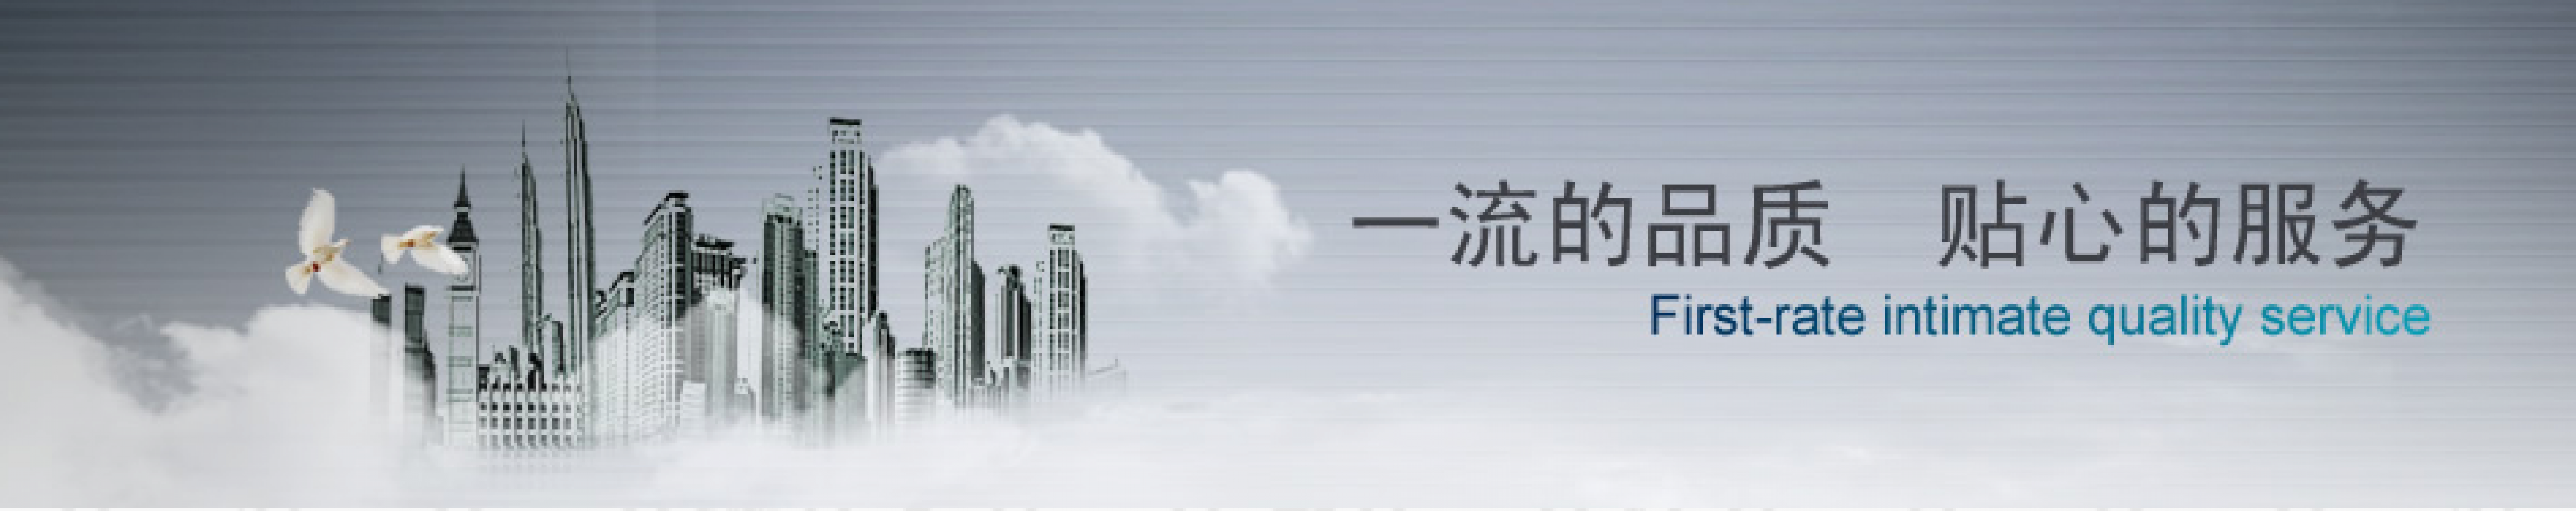 Jinjiang GR Trading Co. Ltd